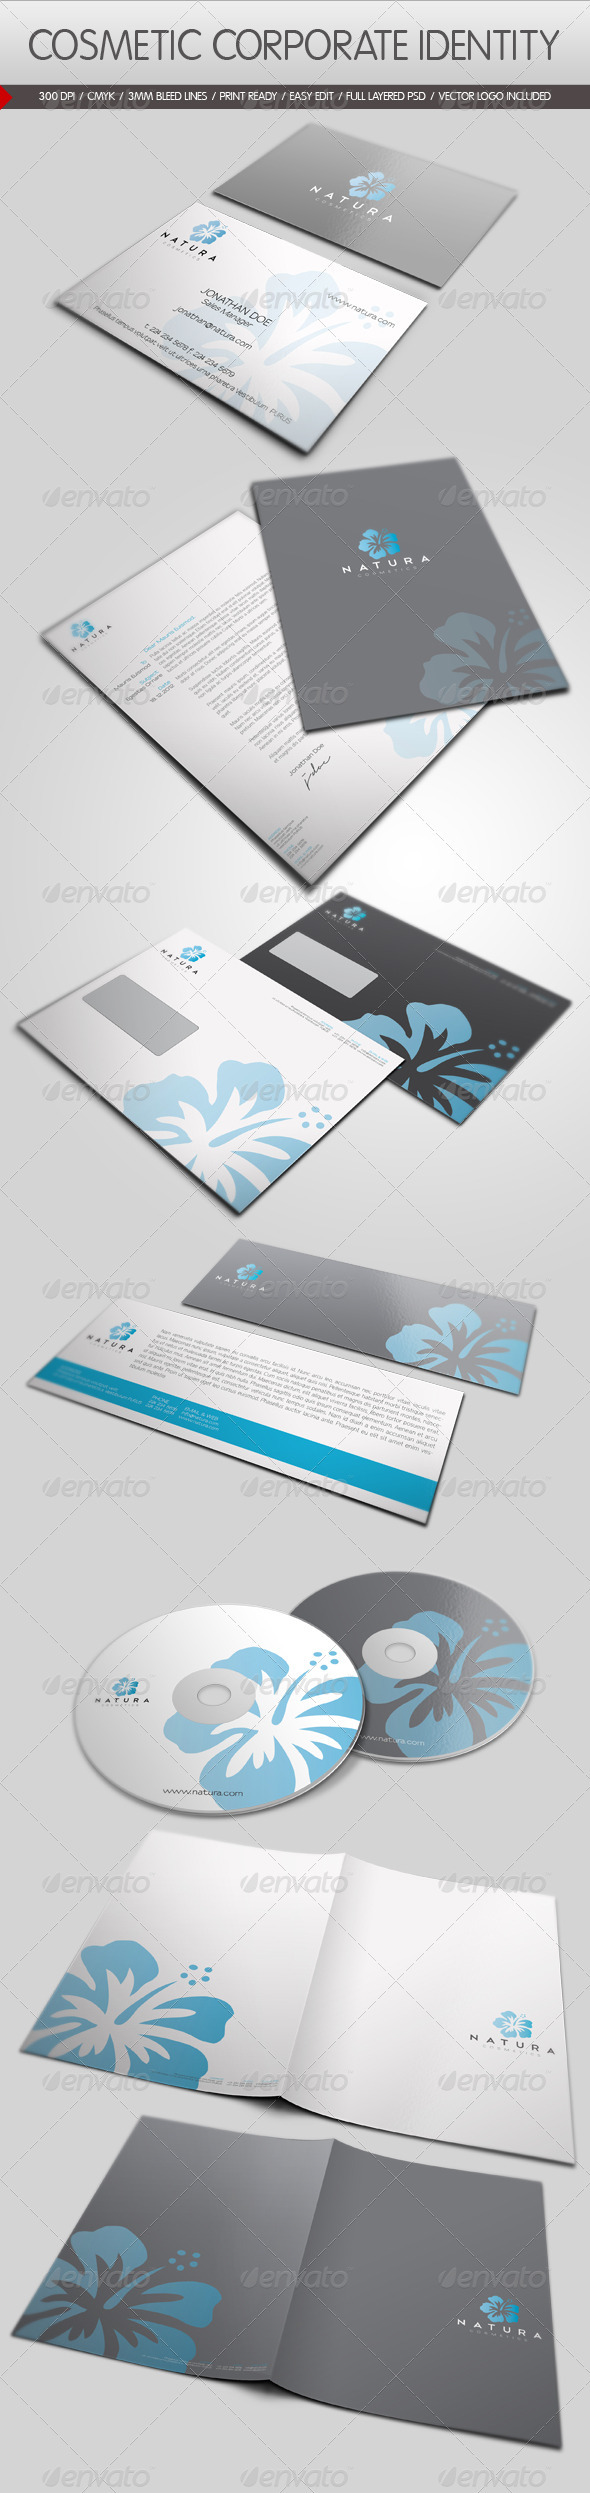 Cosmetic Corporate Identity - Stationery Print Templates